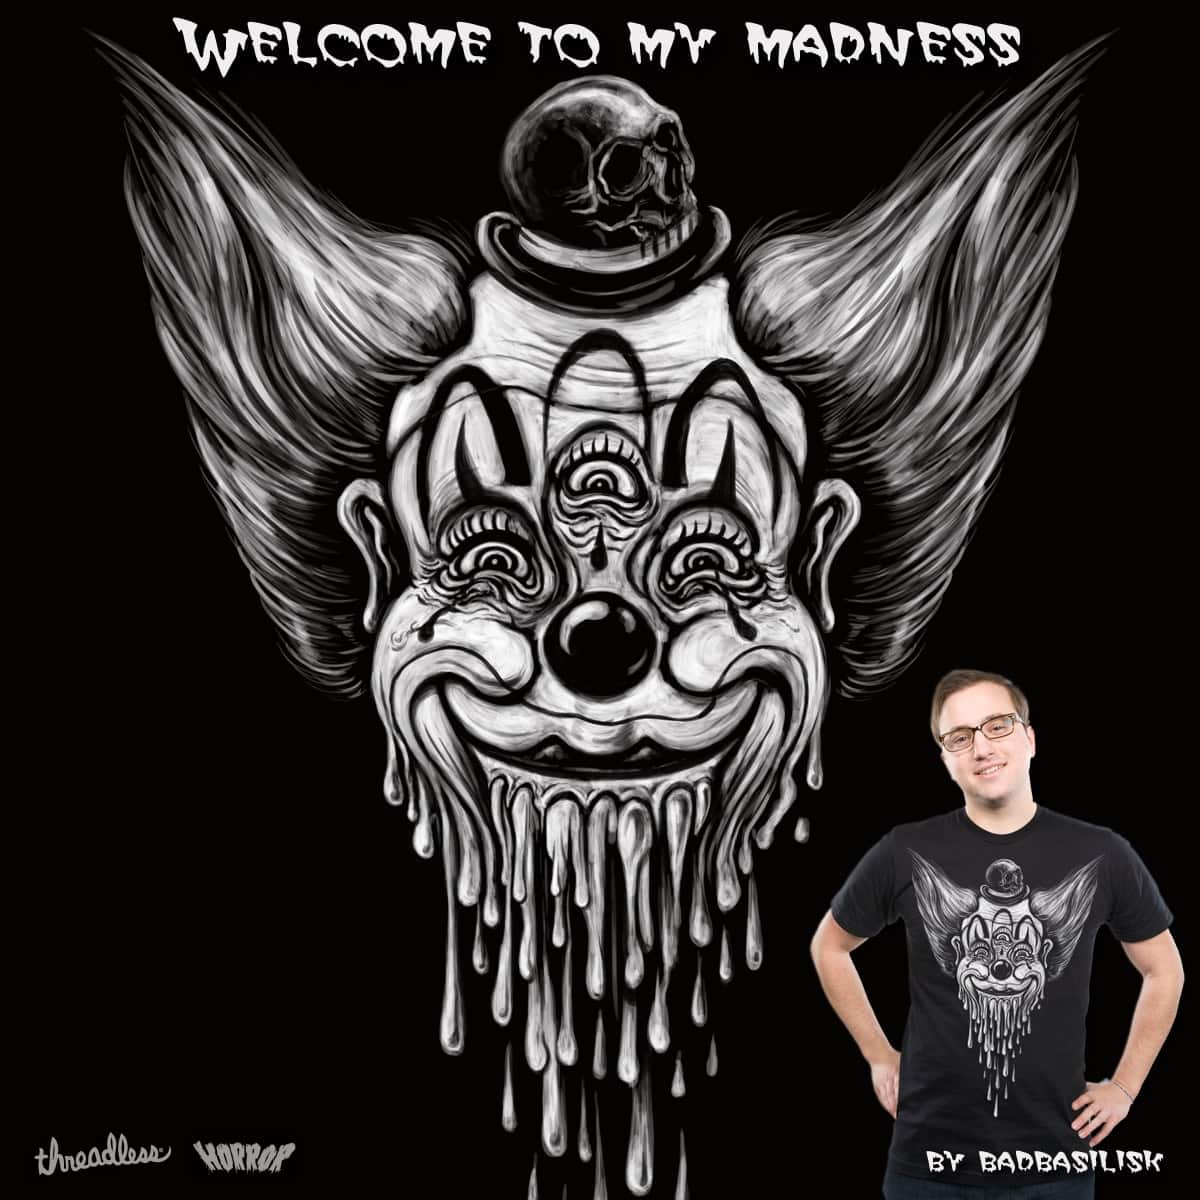 Welcome to my Madness by badbasilisk on Threadless